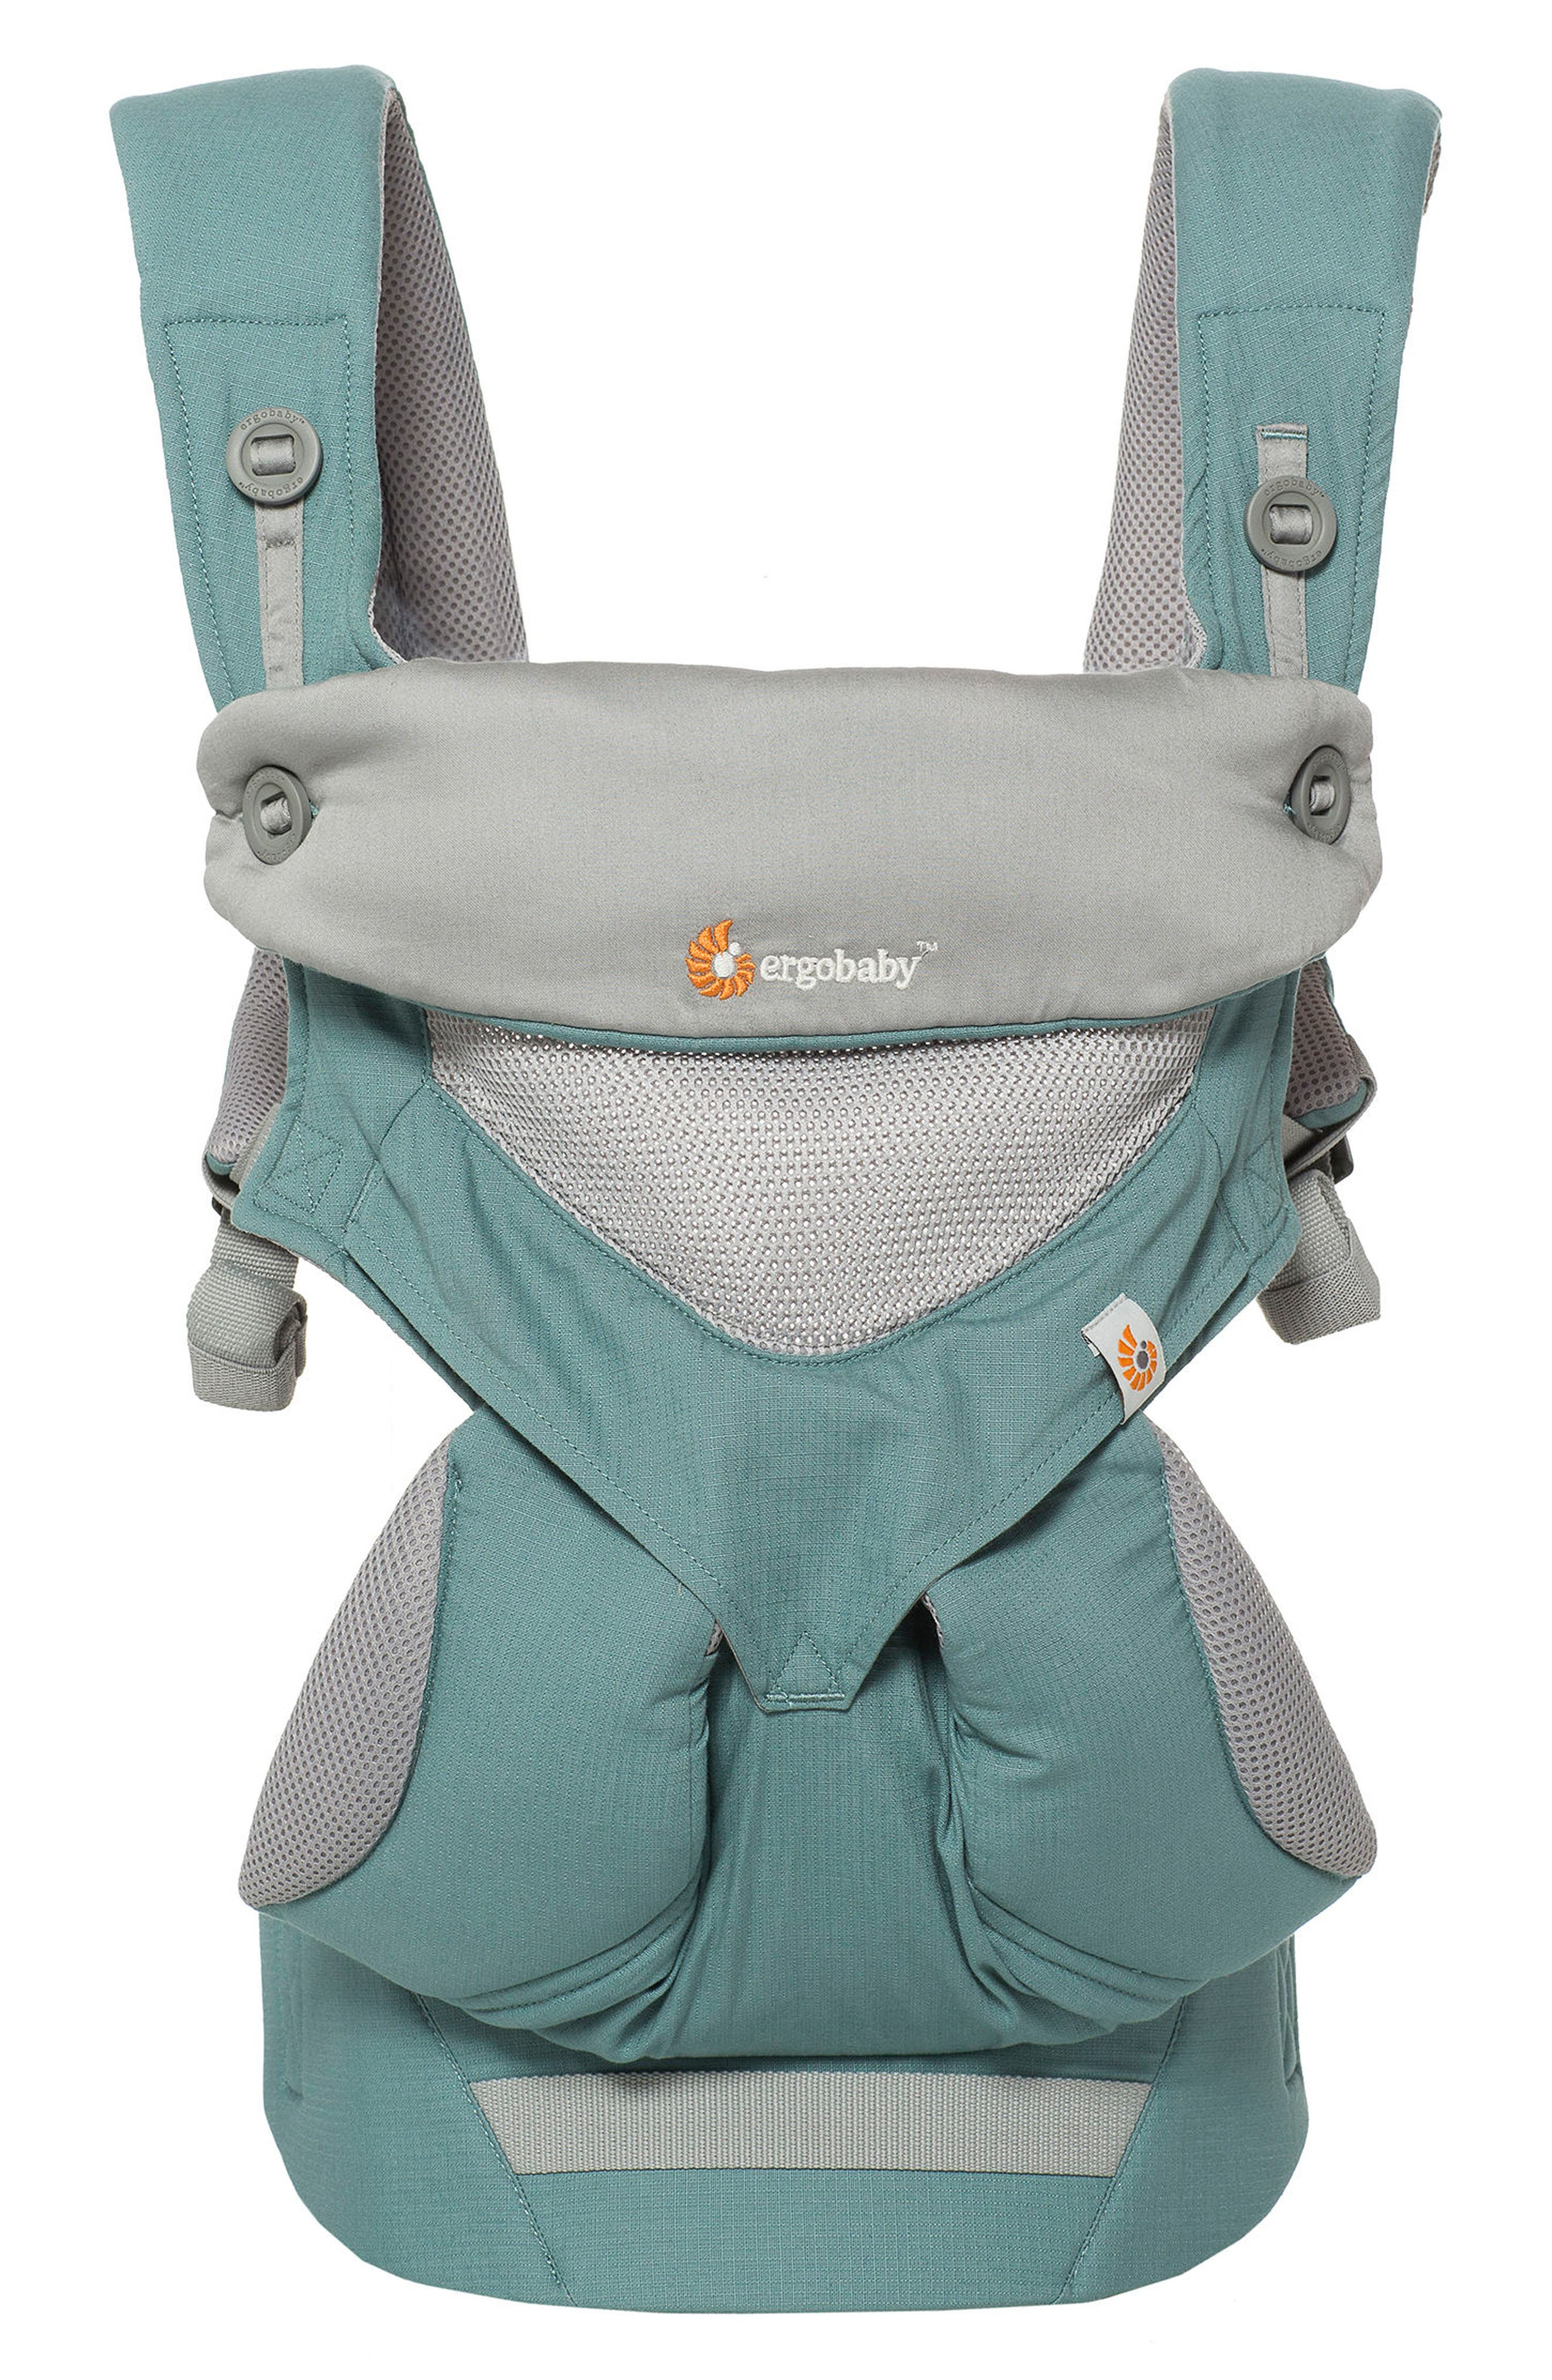 Four Position 360 - Cool Air Baby Carrier,                             Main thumbnail 1, color,                             Green/ Light Grey